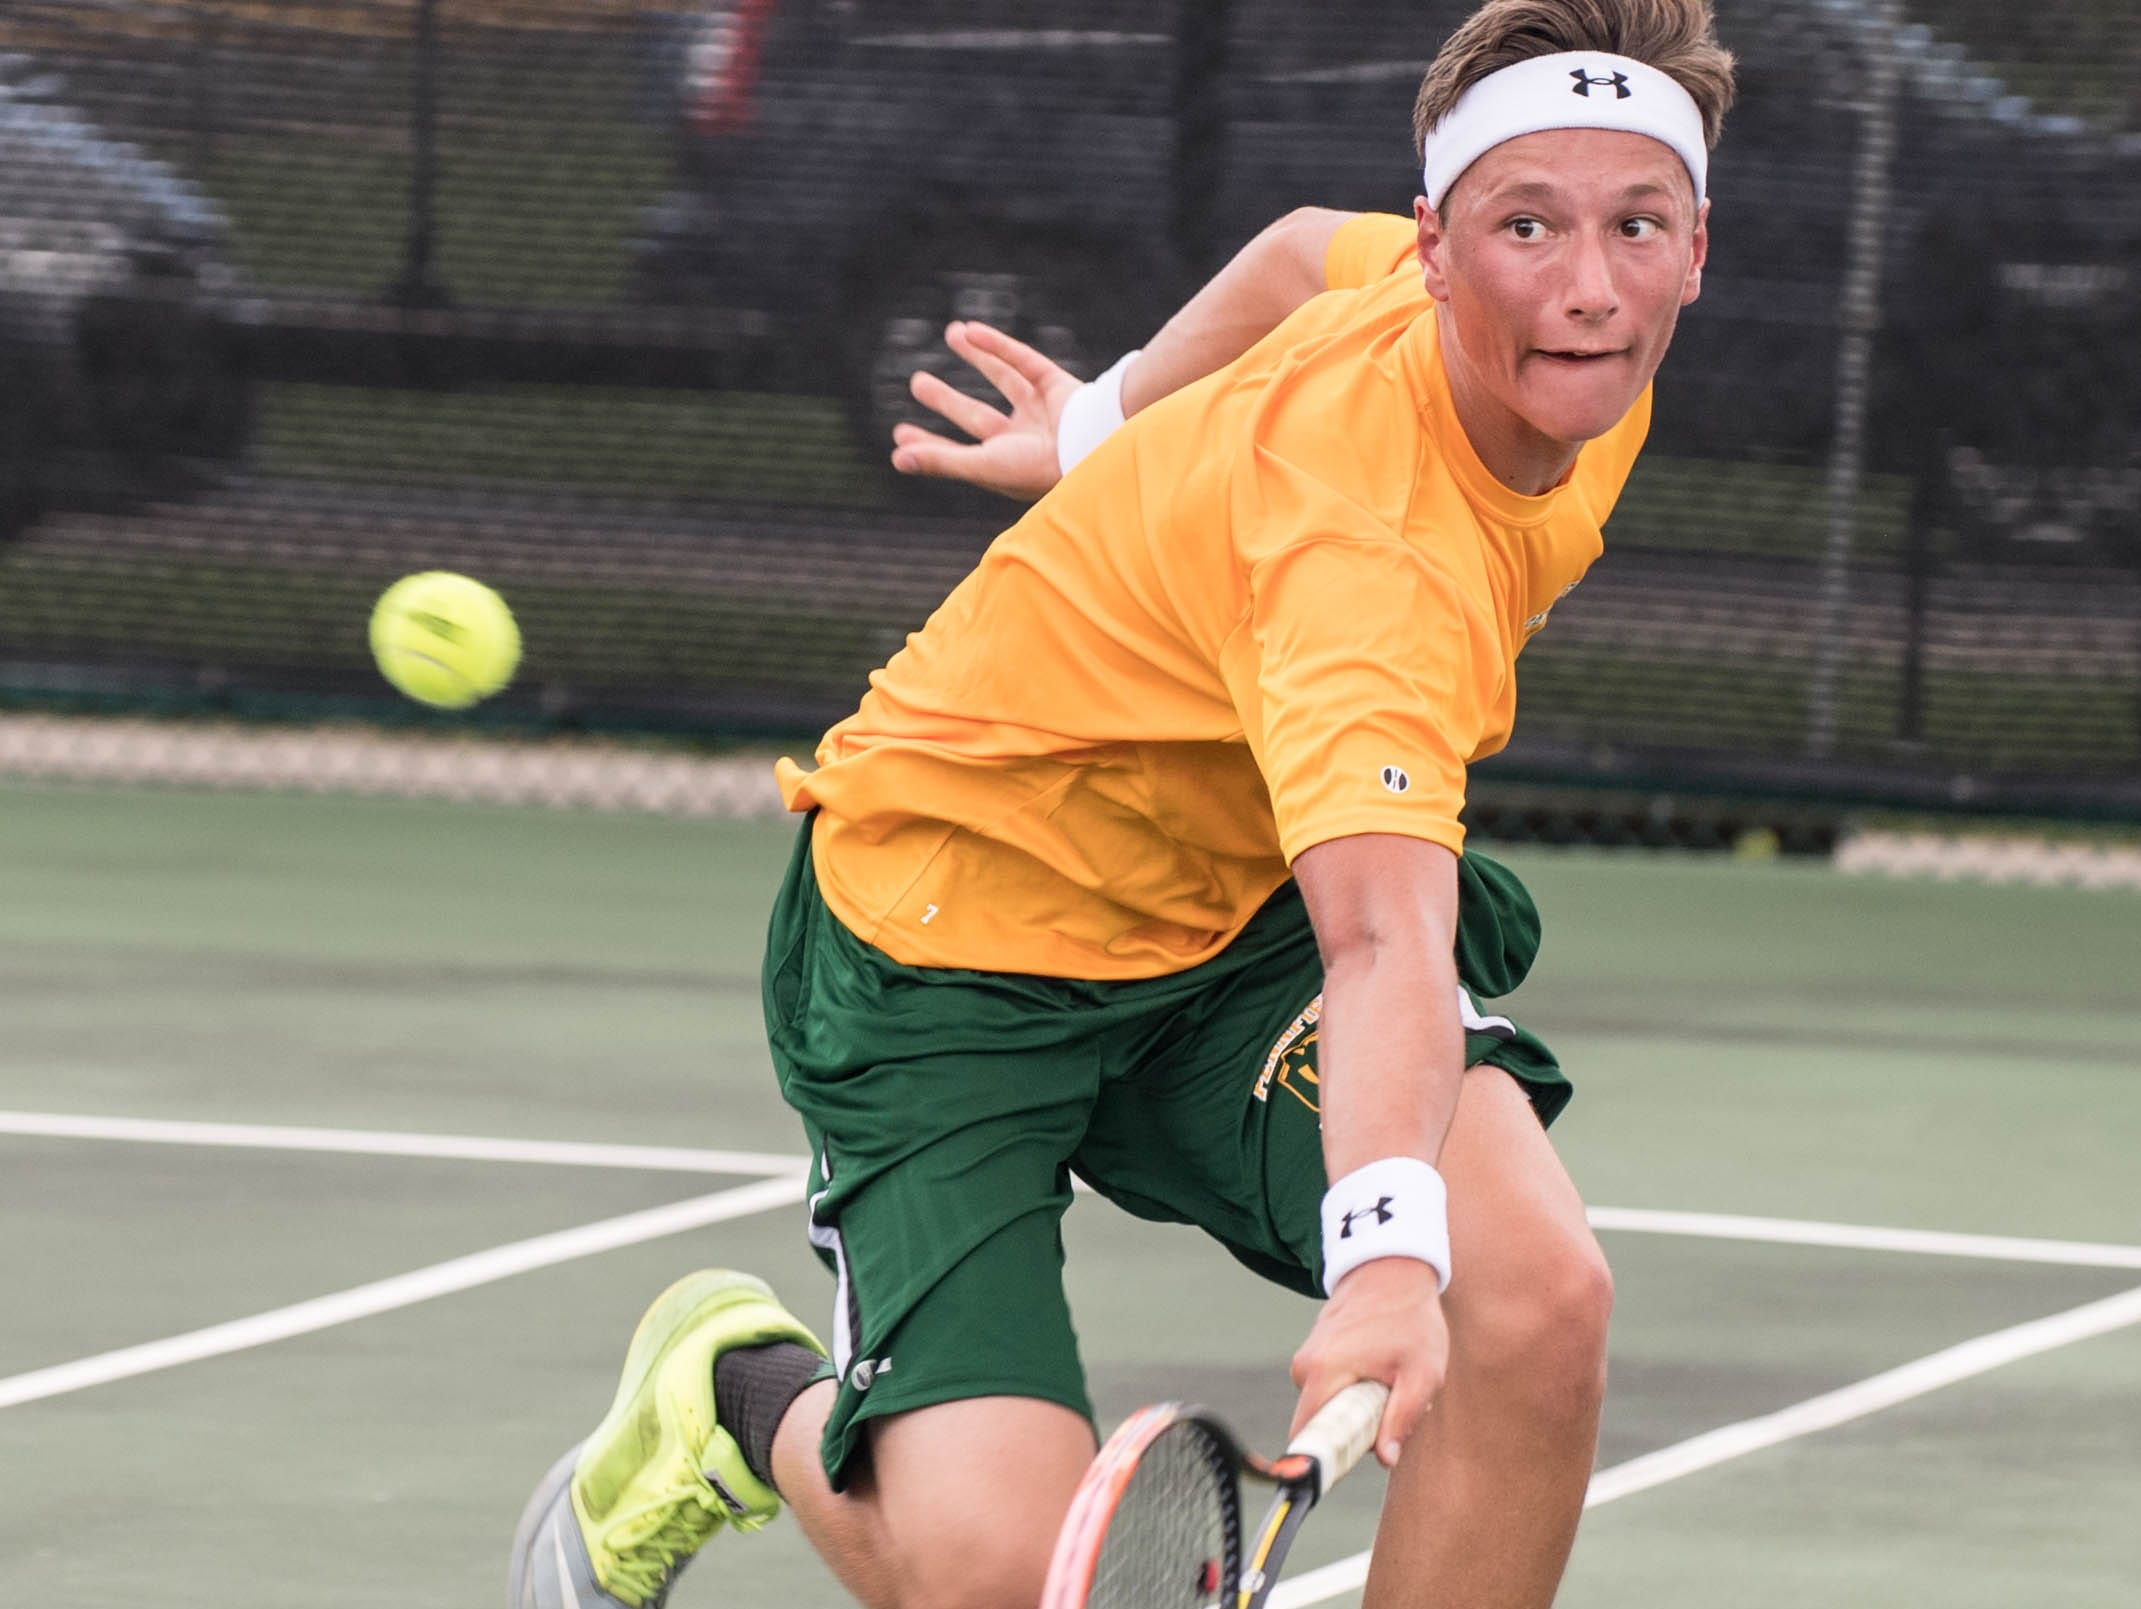 Pennfield High School senior Alex LaChance during the All-City Tennis Tournament on Aug. 25.